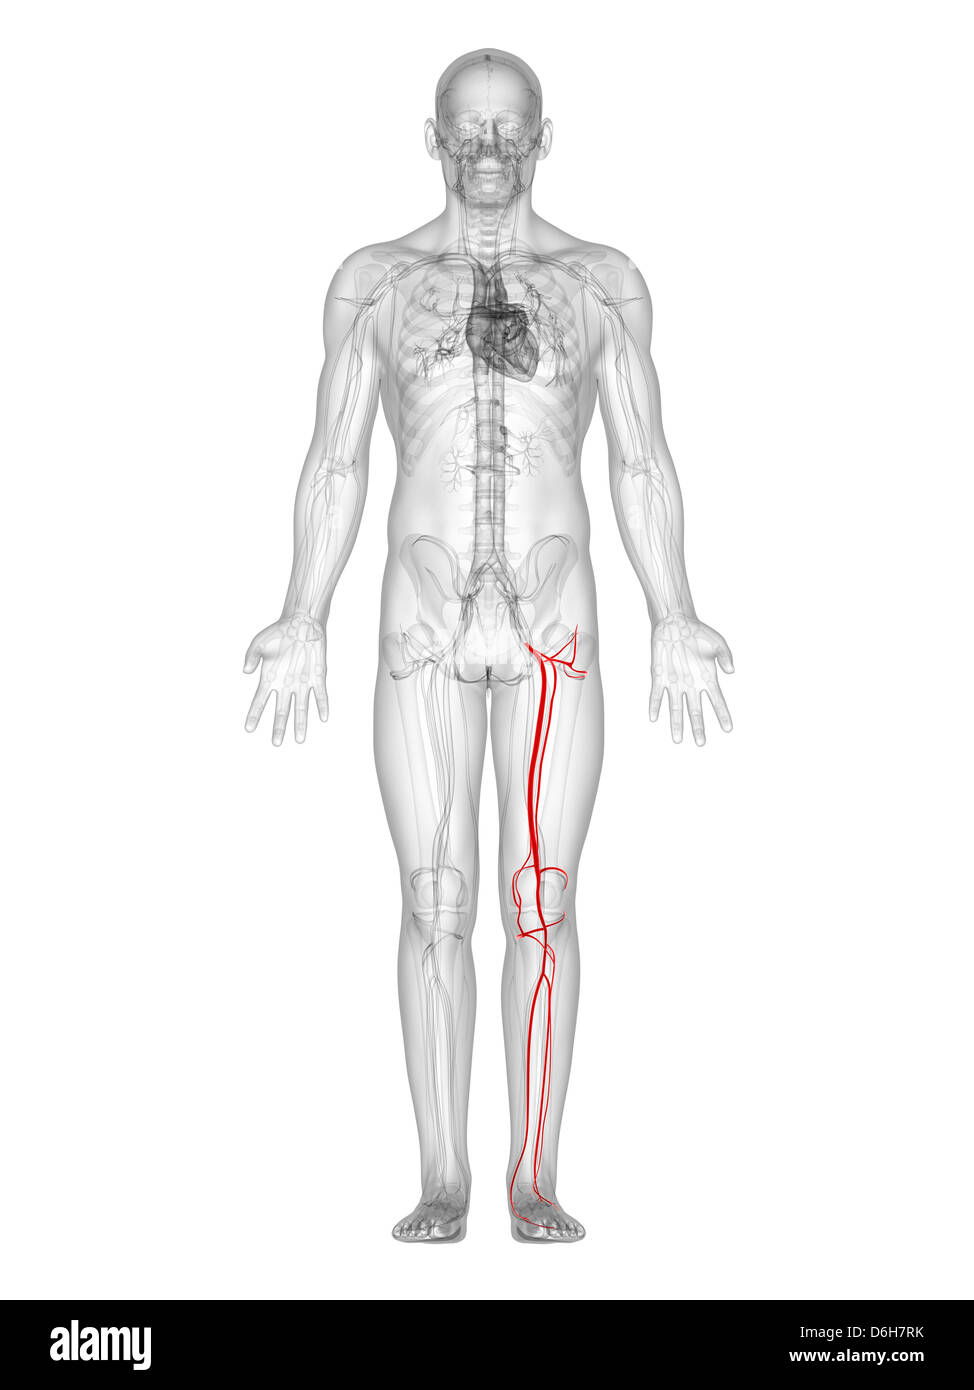 Leg Arteries Stock Photos Leg Arteries Stock Images Alamy